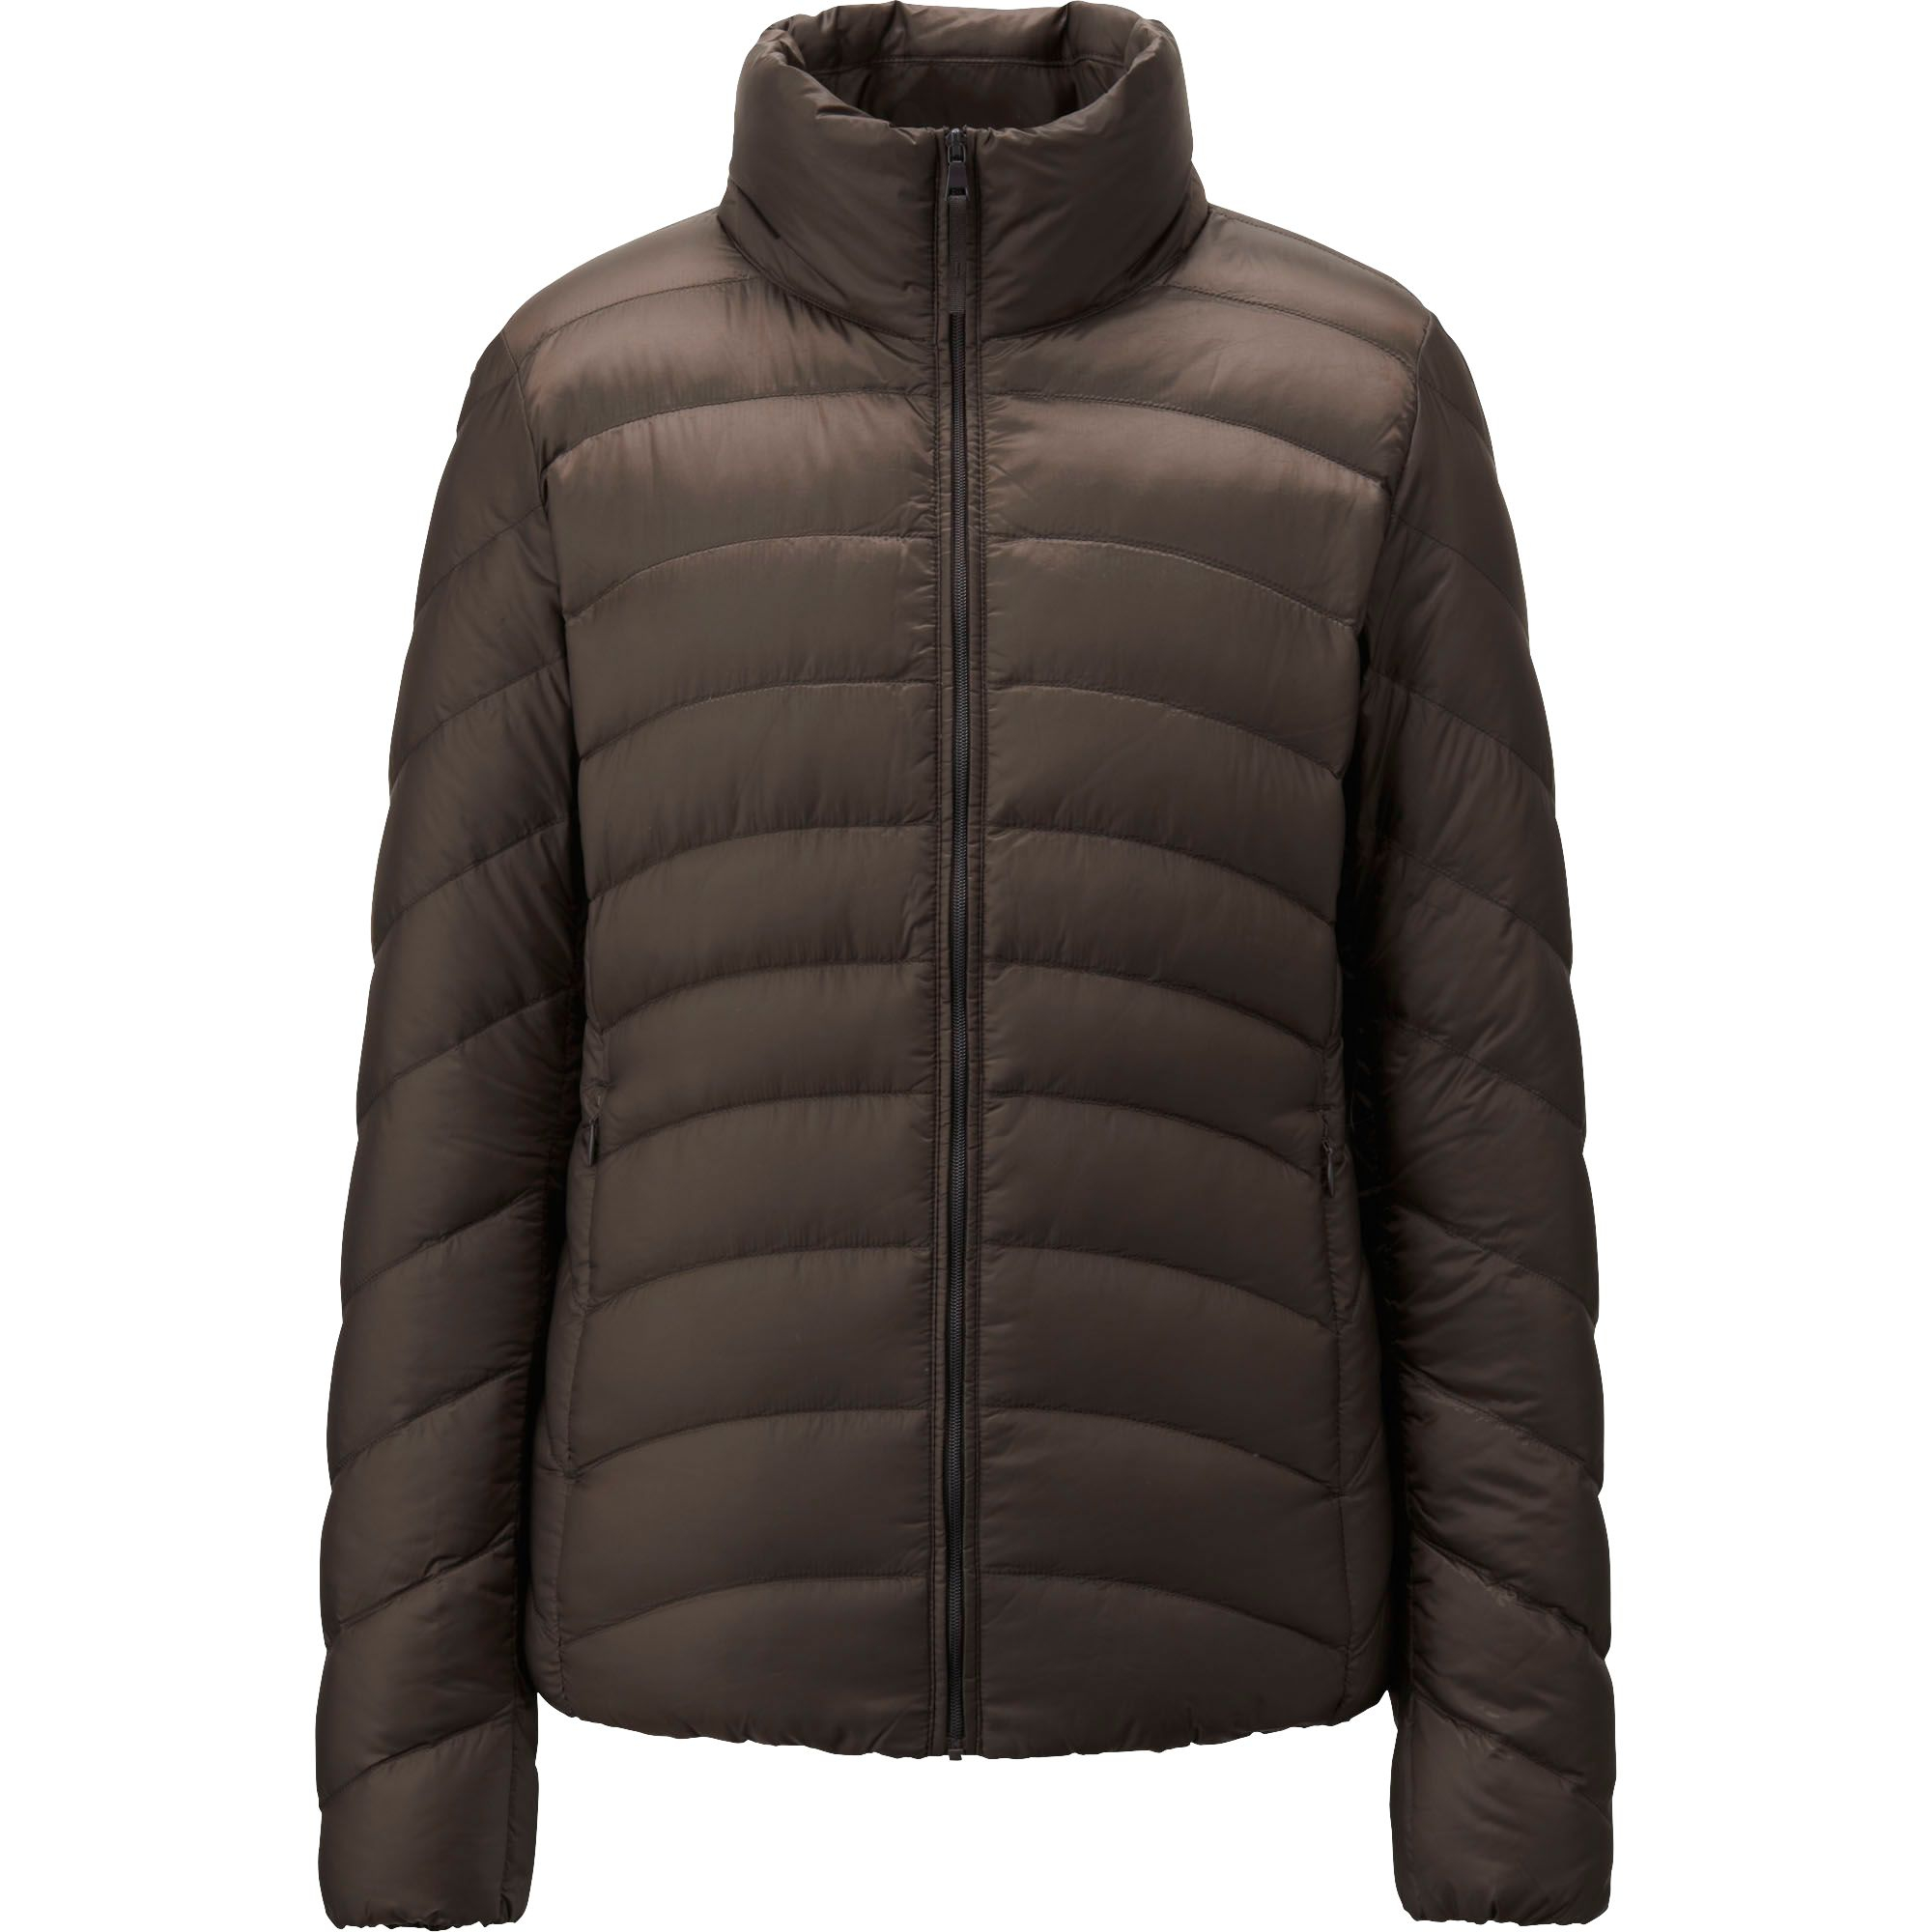 uniqlo ultra light down jacket in brown dark brown lyst. Black Bedroom Furniture Sets. Home Design Ideas